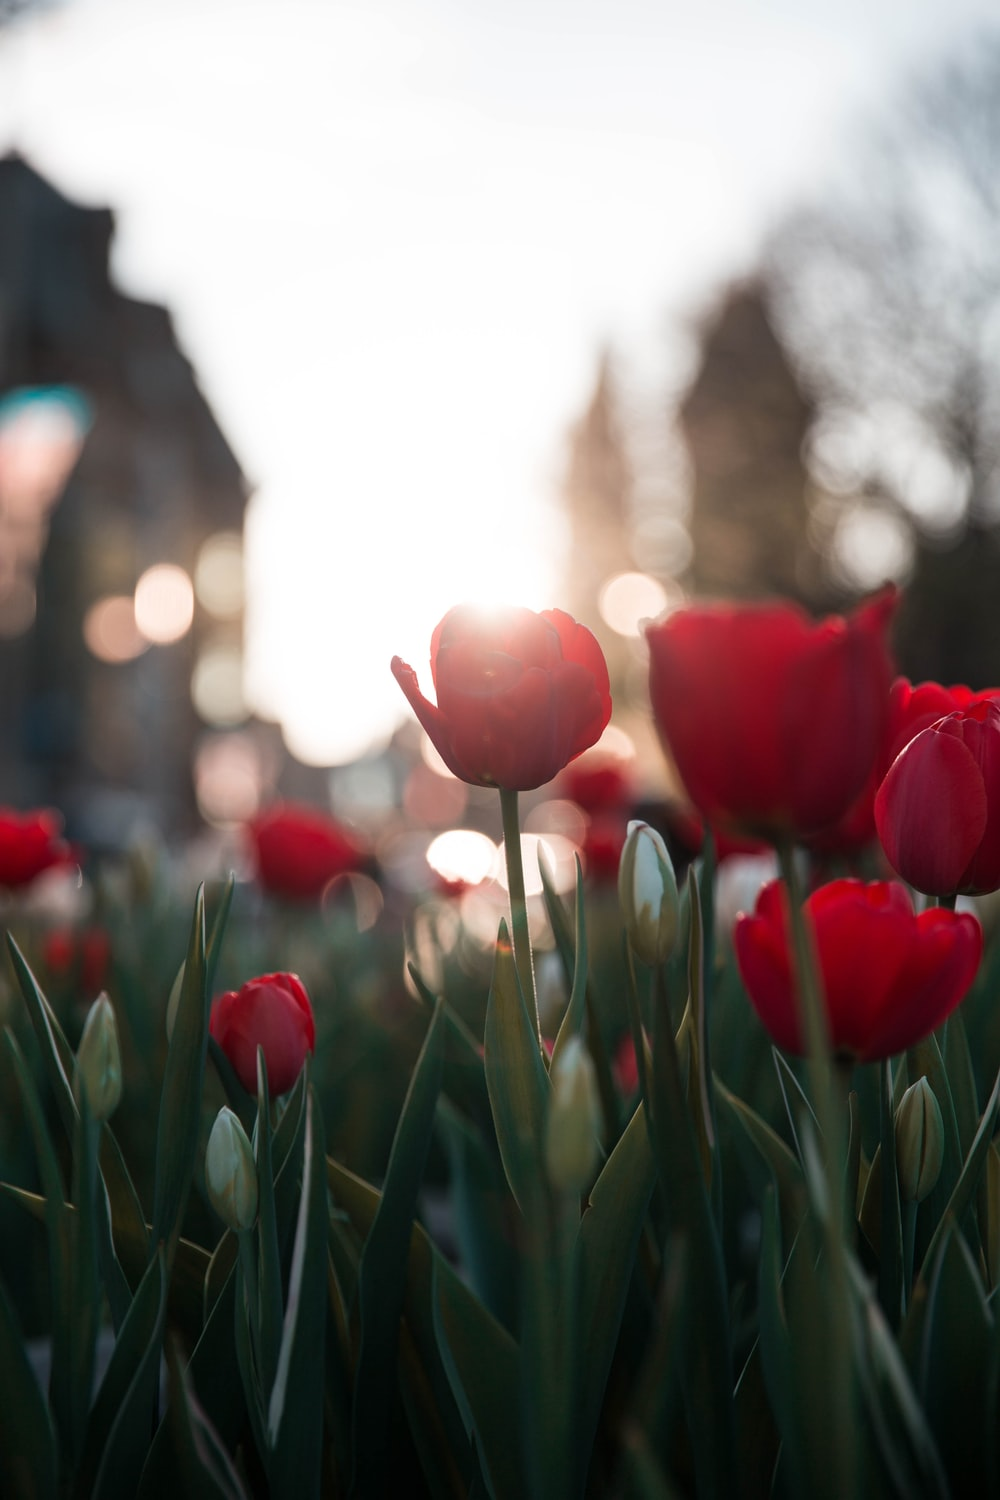 Tulip Pictures Download Free Images On Unsplash